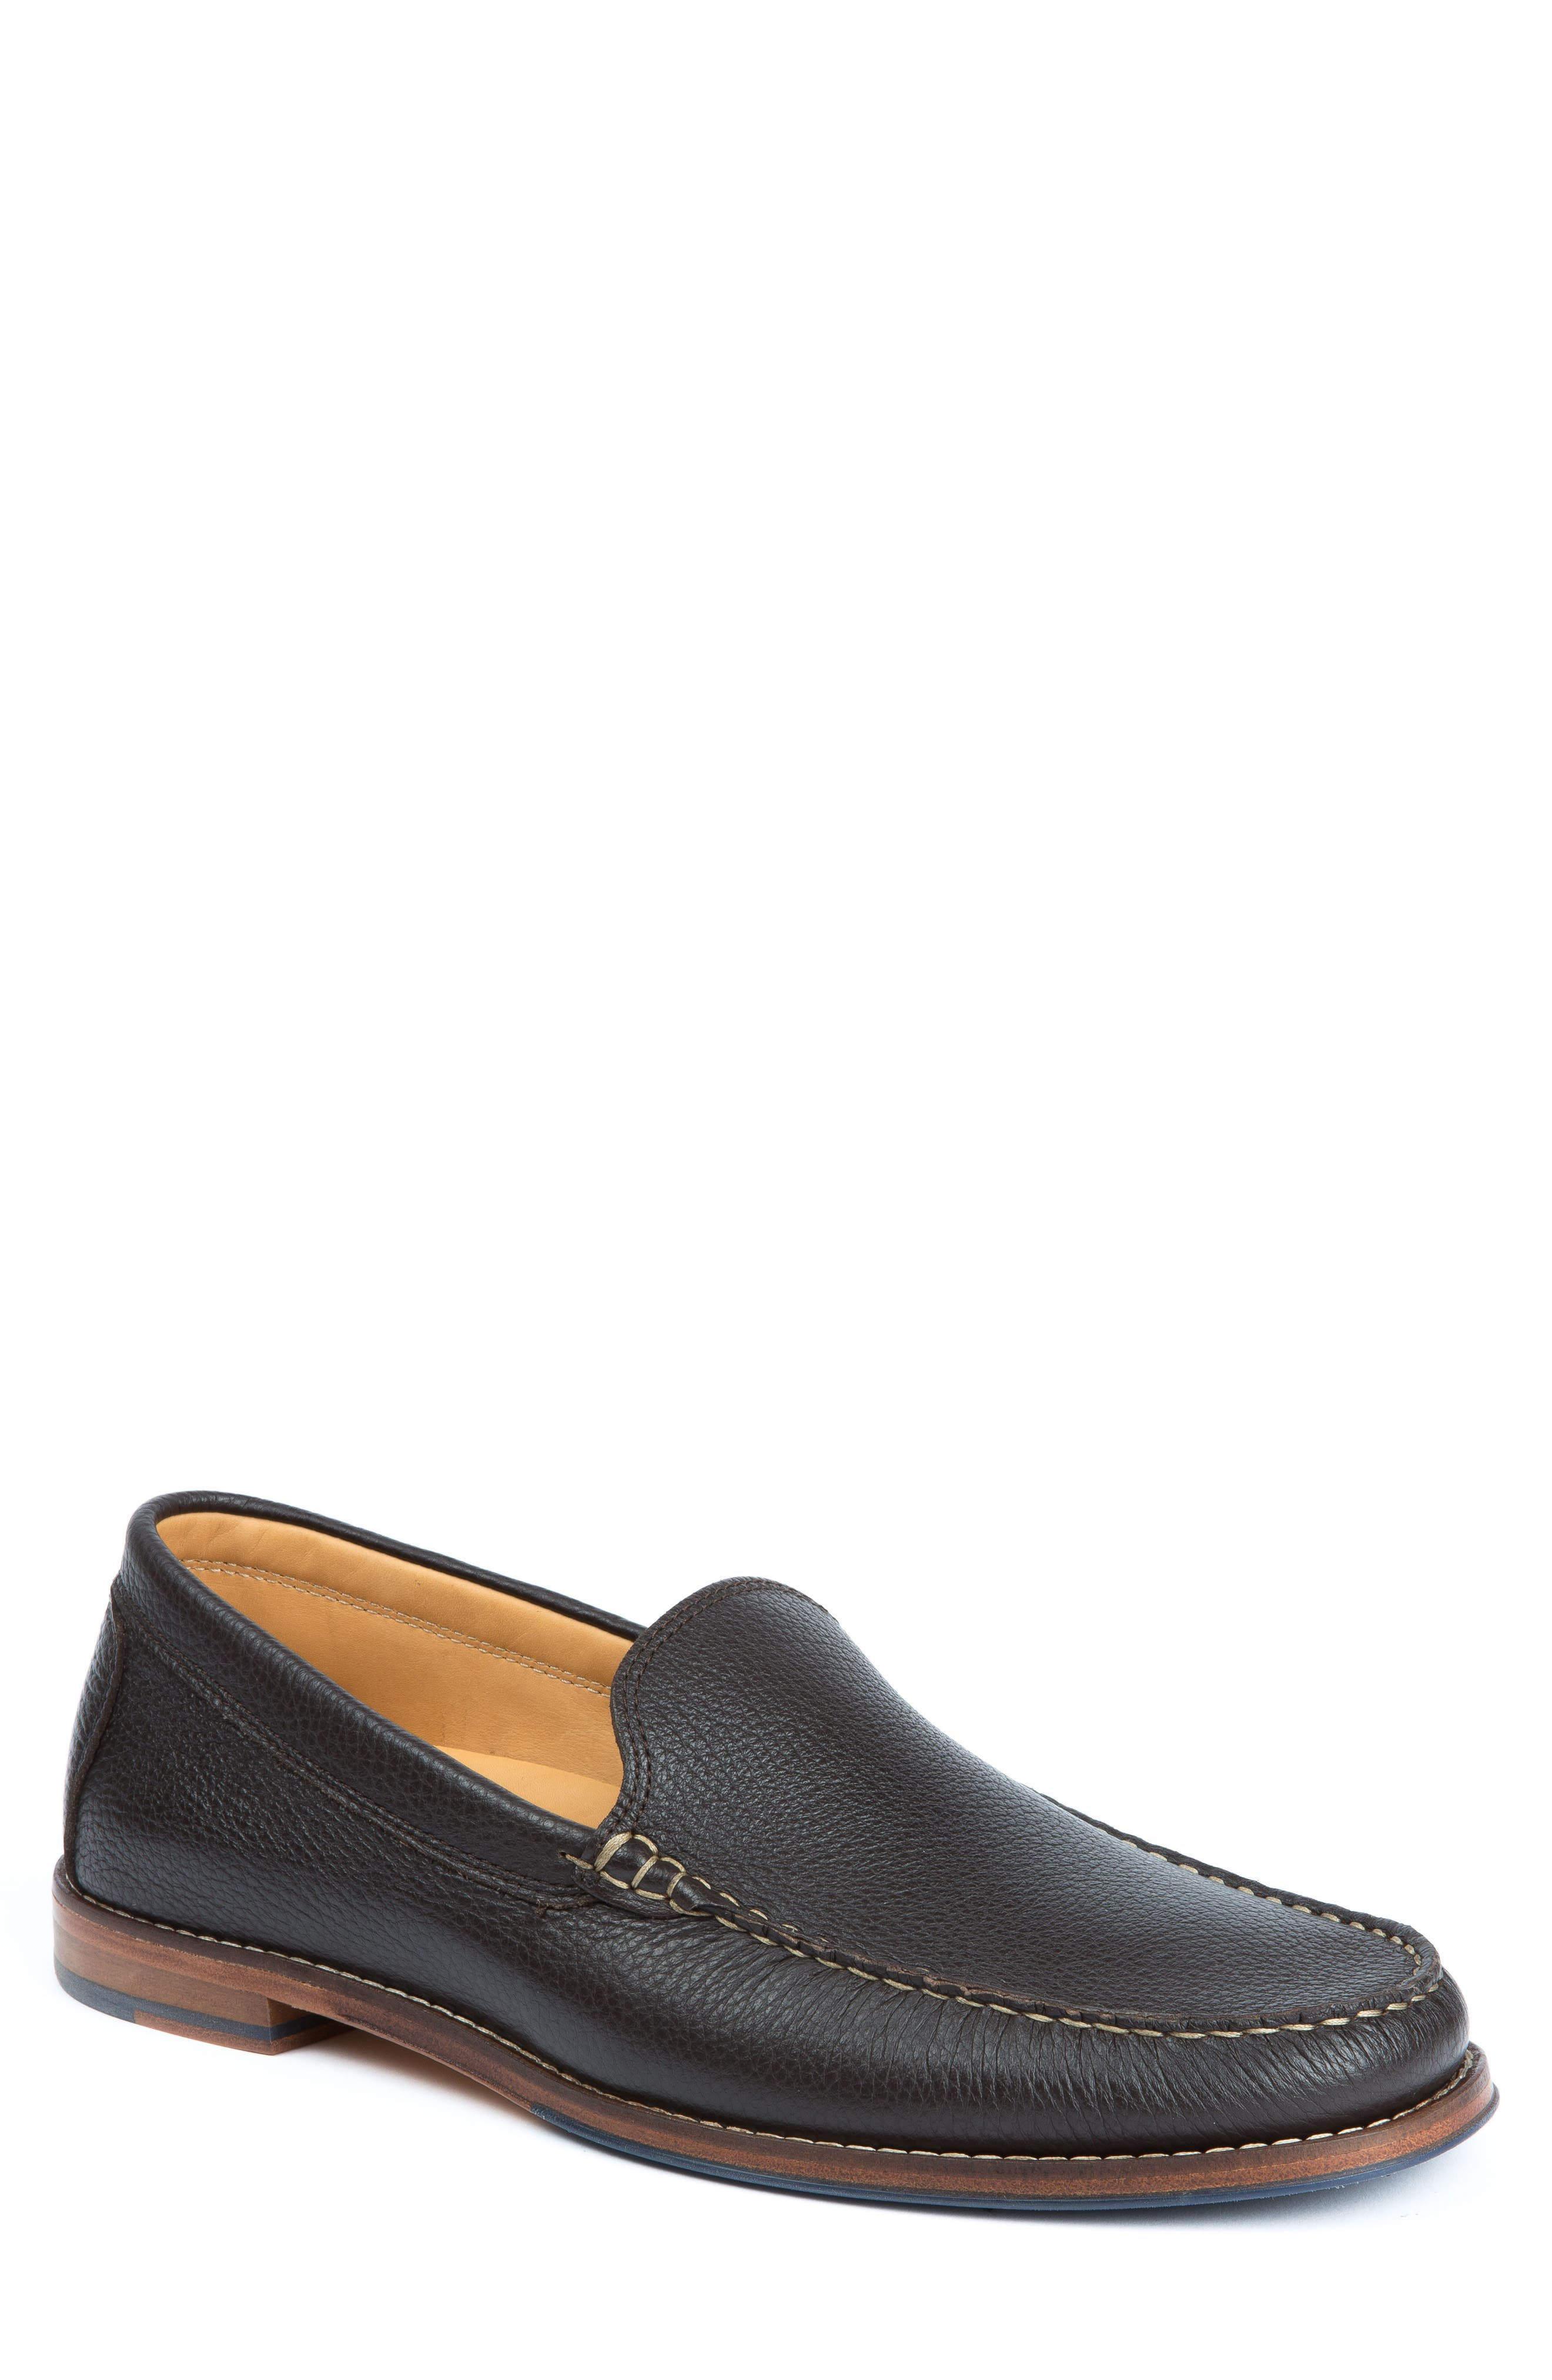 Alternate Image 1 Selected - Austen Heller Caldwells Loafer (Men)